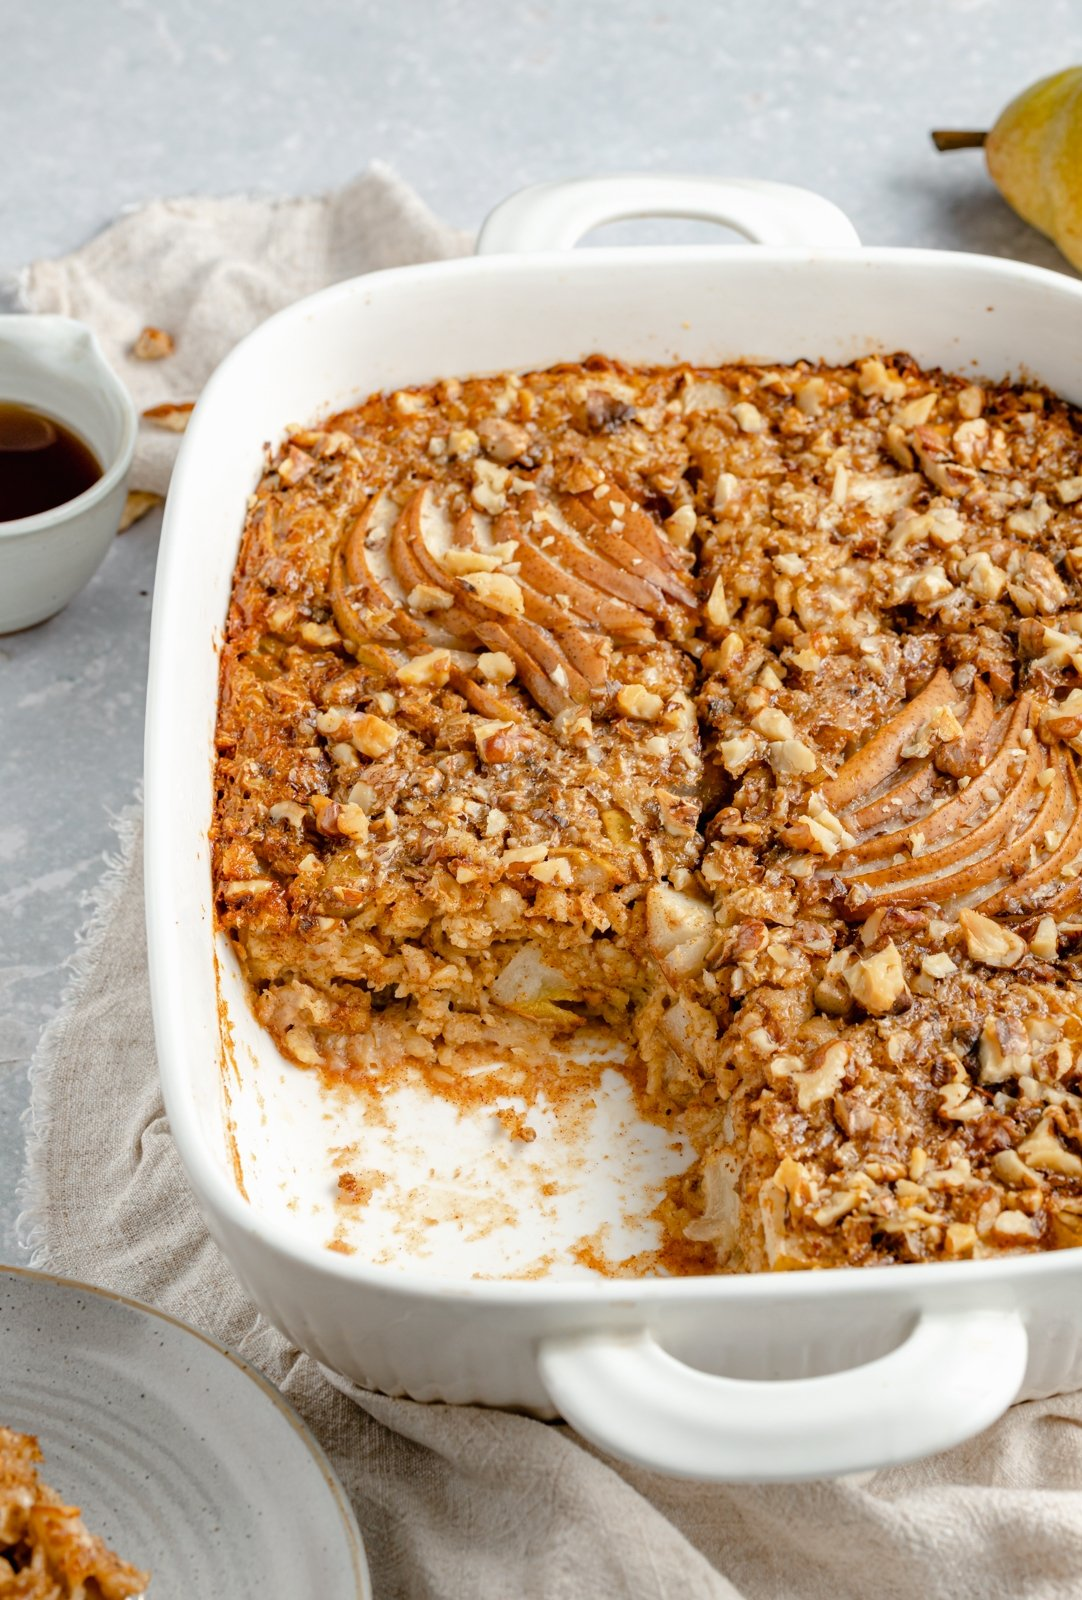 pear oatmeal bake in a baking dish with a slice cut out